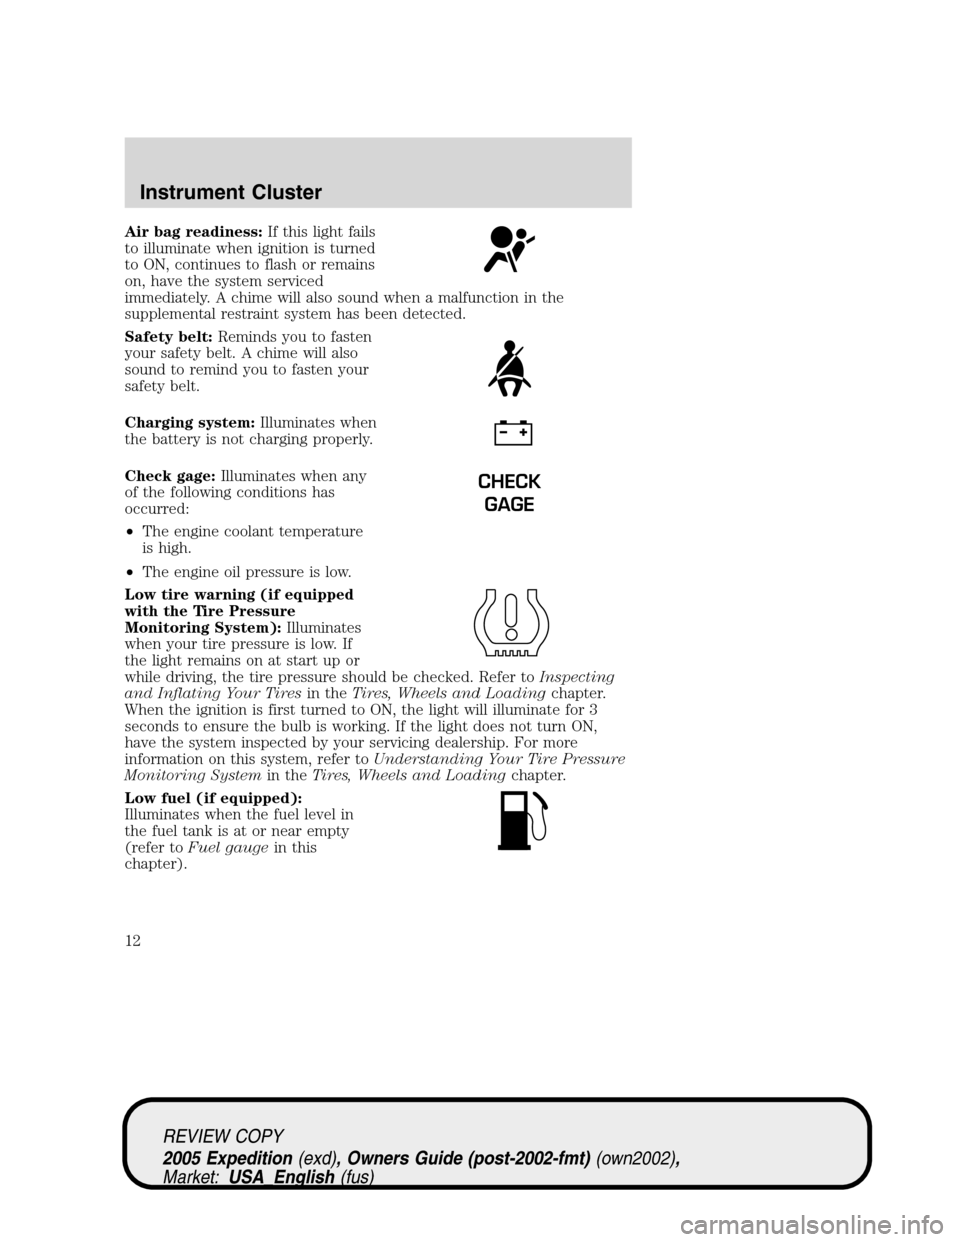 FORD EXPEDITION 2005 2.G Owners Manual, Page 12